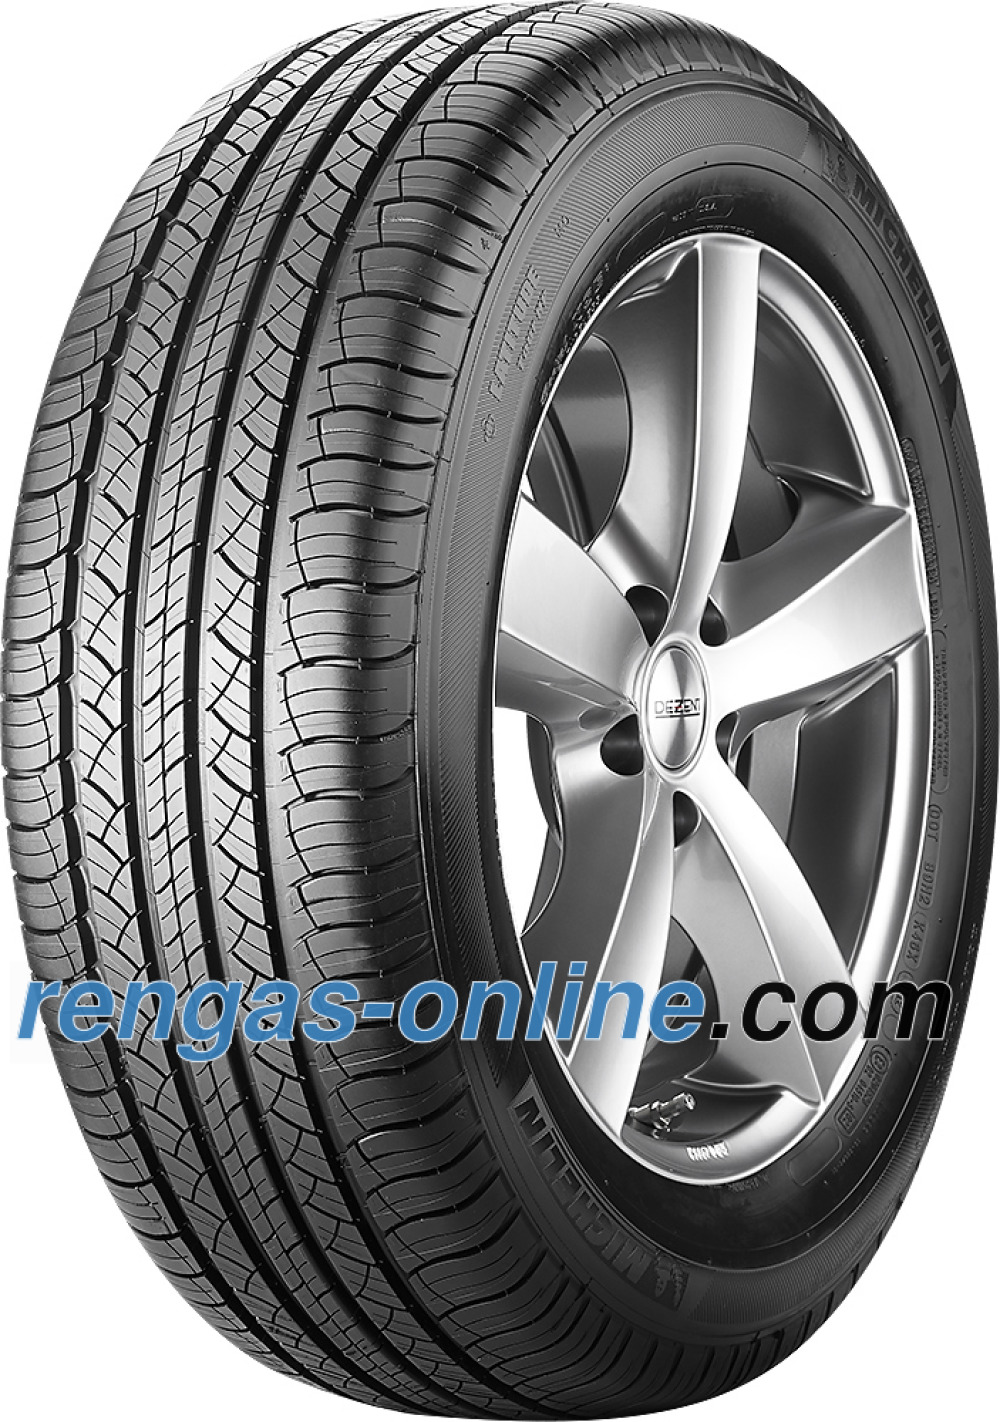 michelin-latitude-tour-hp-28560-r18-120v-xl